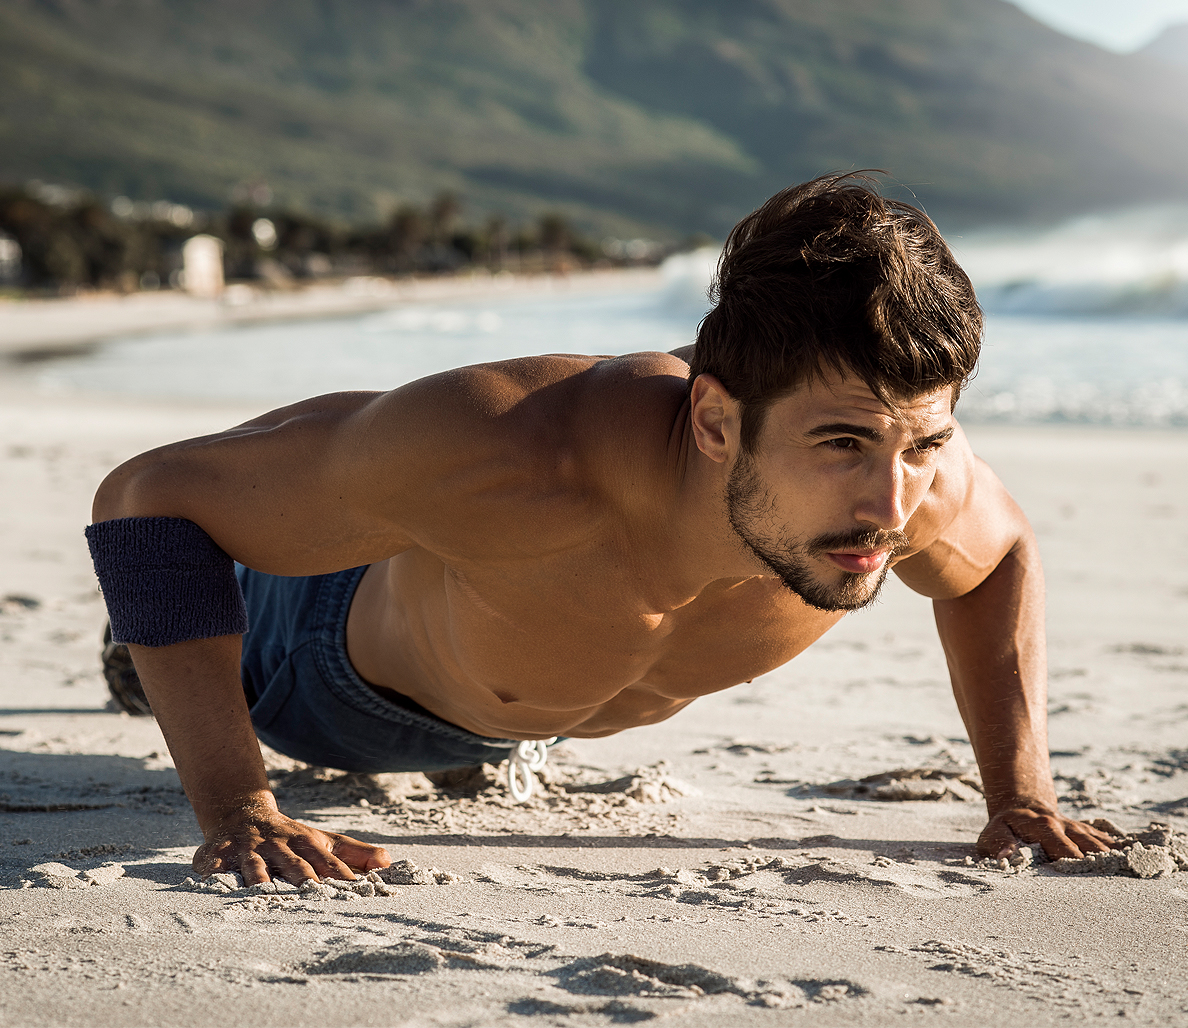 10 HIIT Workouts to Get You Shredded for Summer